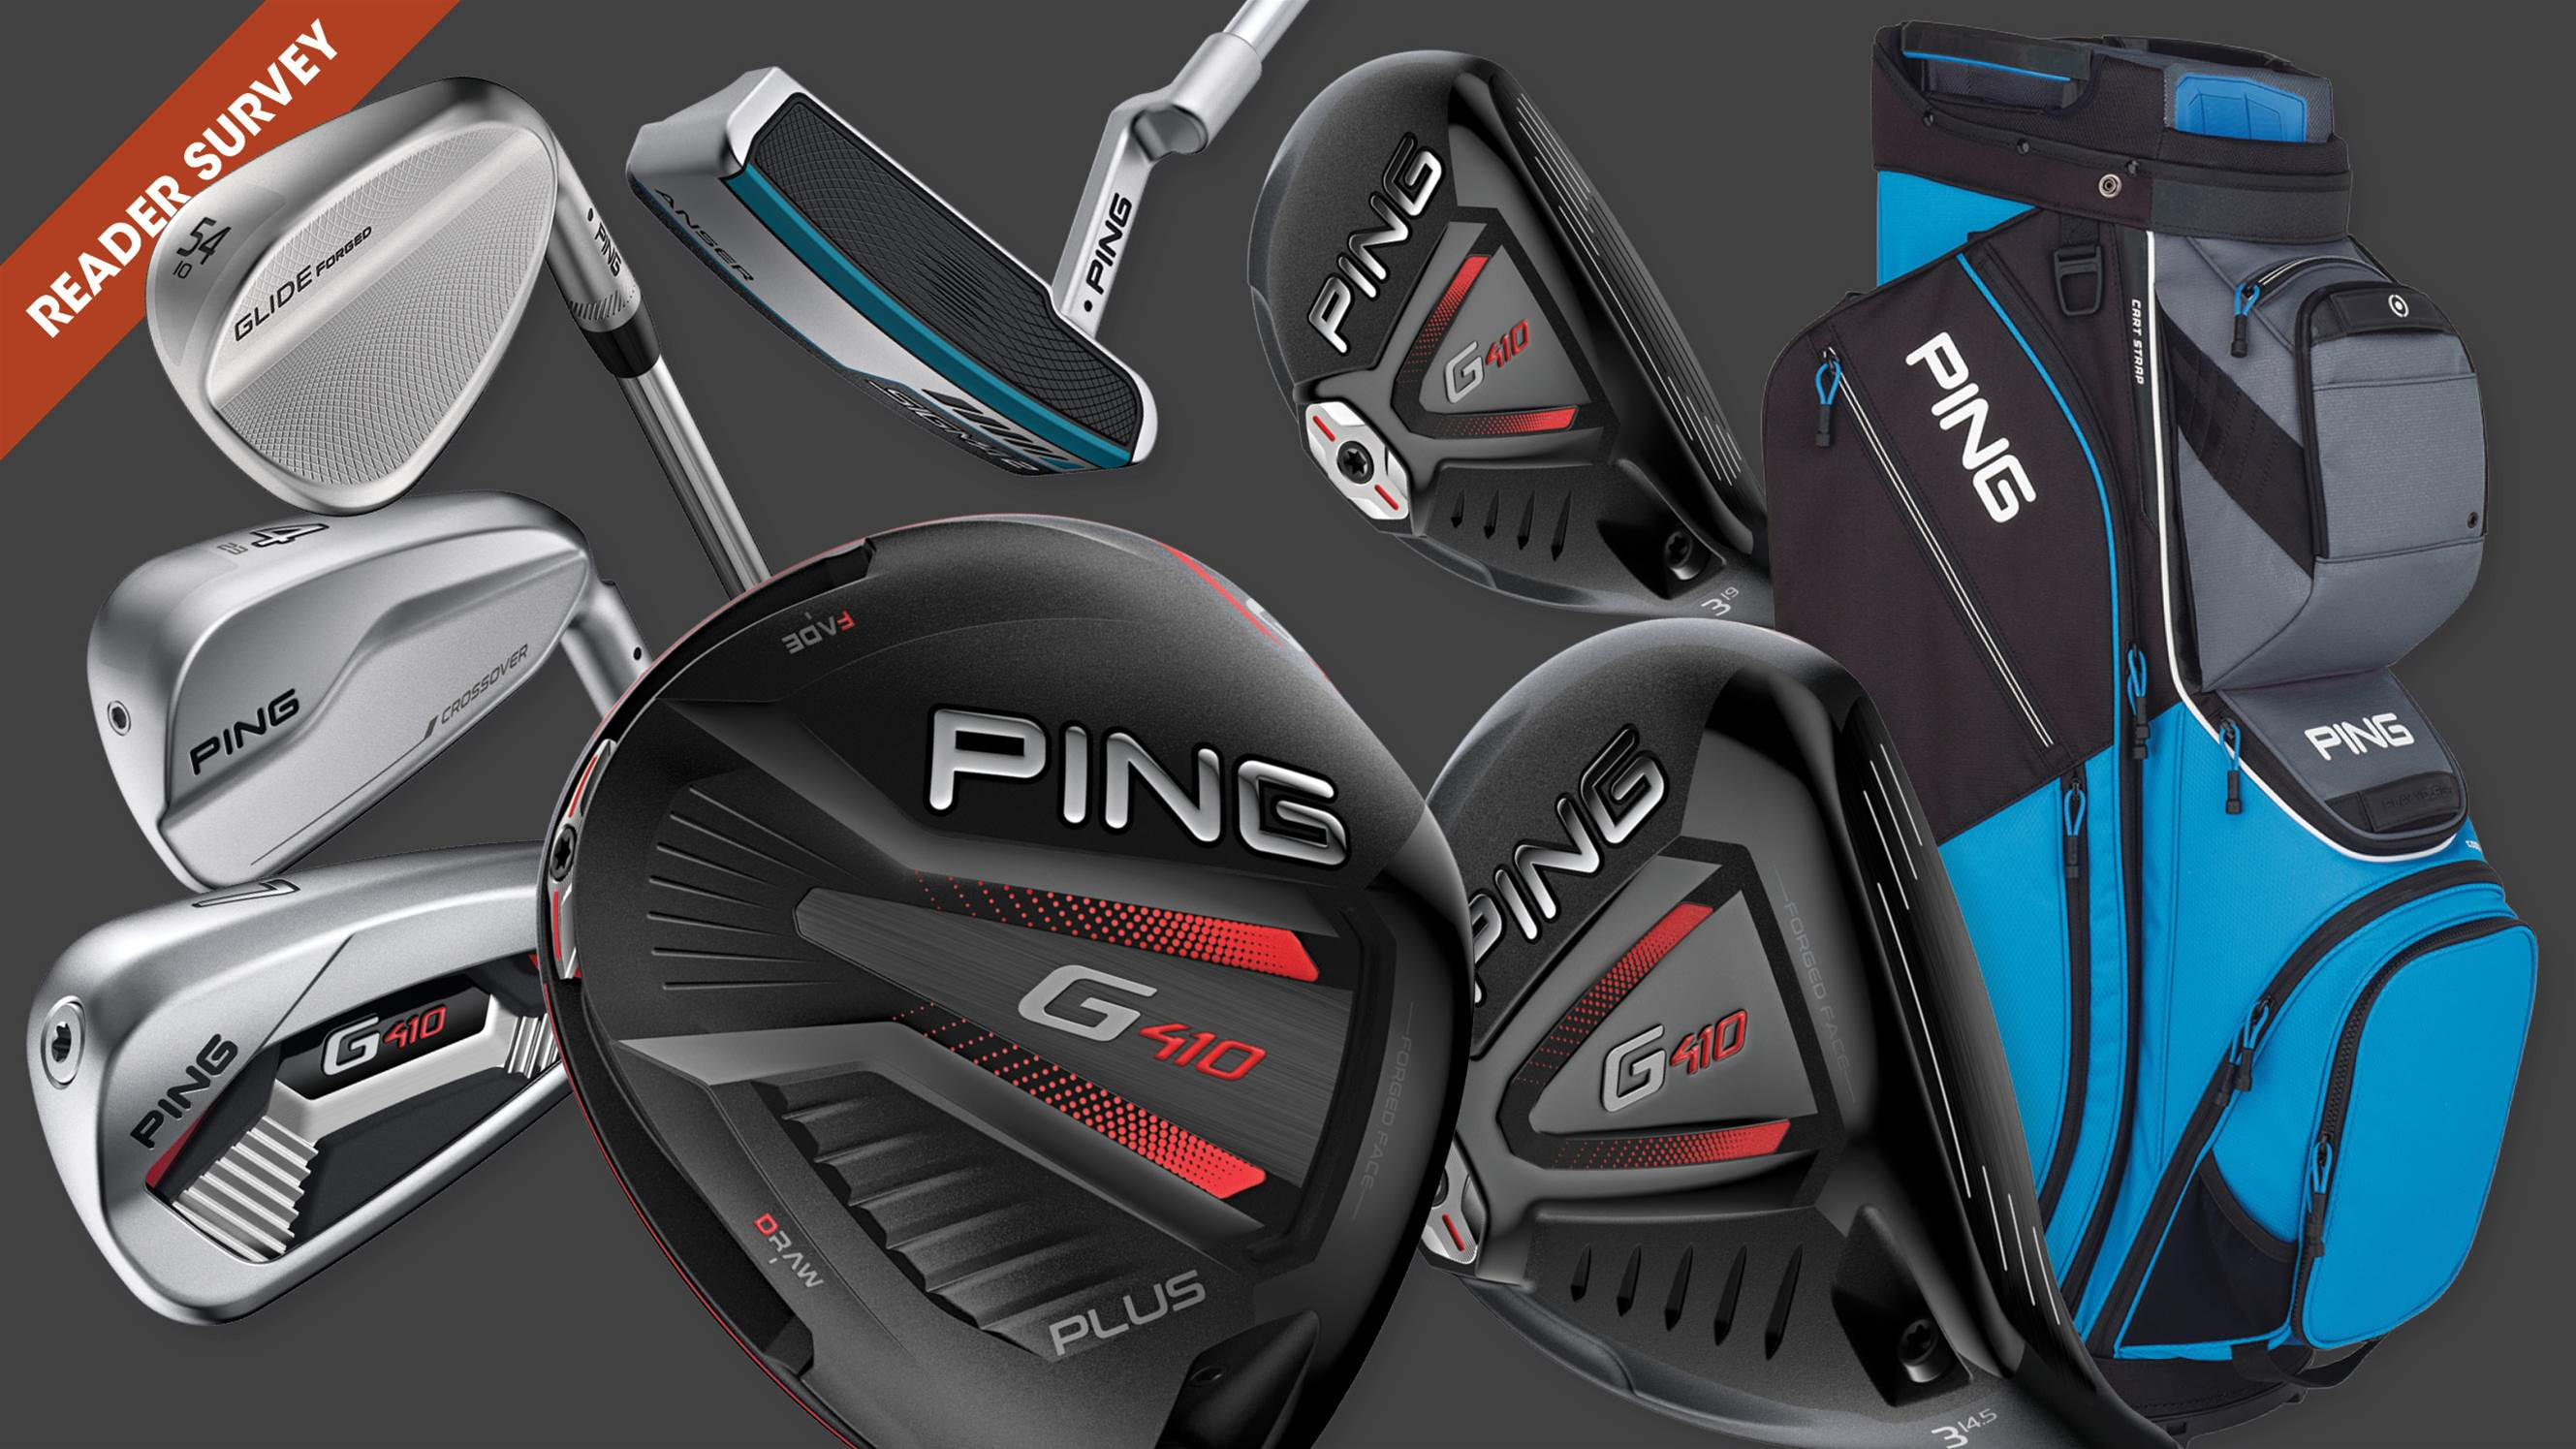 WIN a set of PING clubs worth $5,000